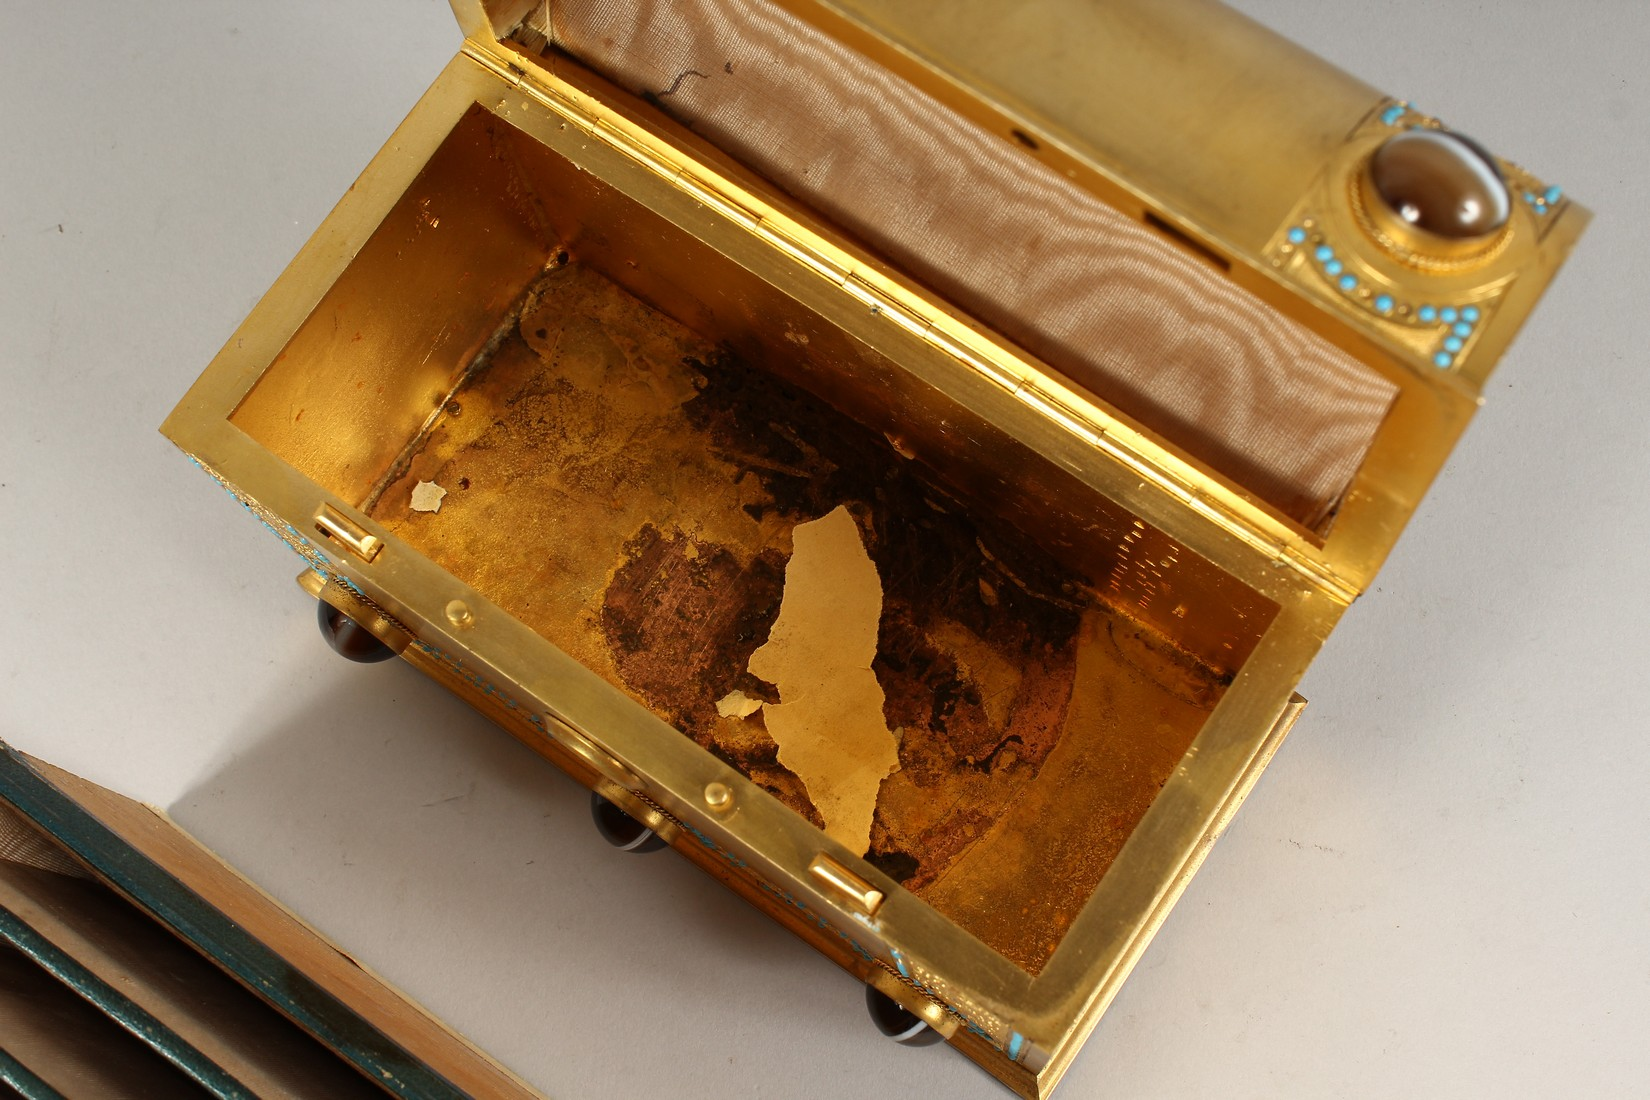 A GOOD 19TH CENTURY FRENCH BRASS DOMED SHAPED CASKET, inset with agate pieces opening to reveal a - Image 4 of 5